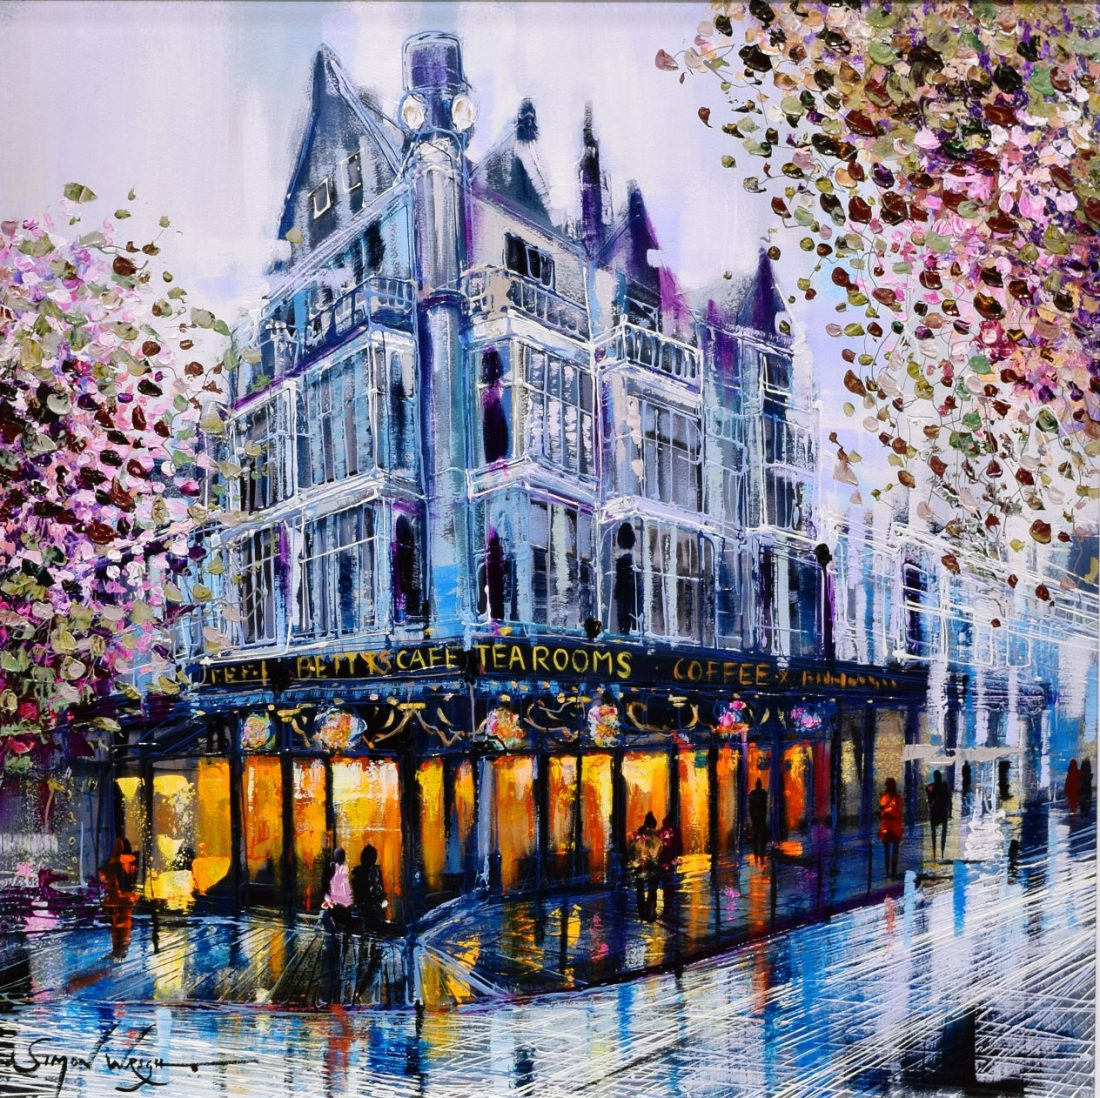 Simon Wright - Bettys Tearoom at the Harrison Lord Gallery